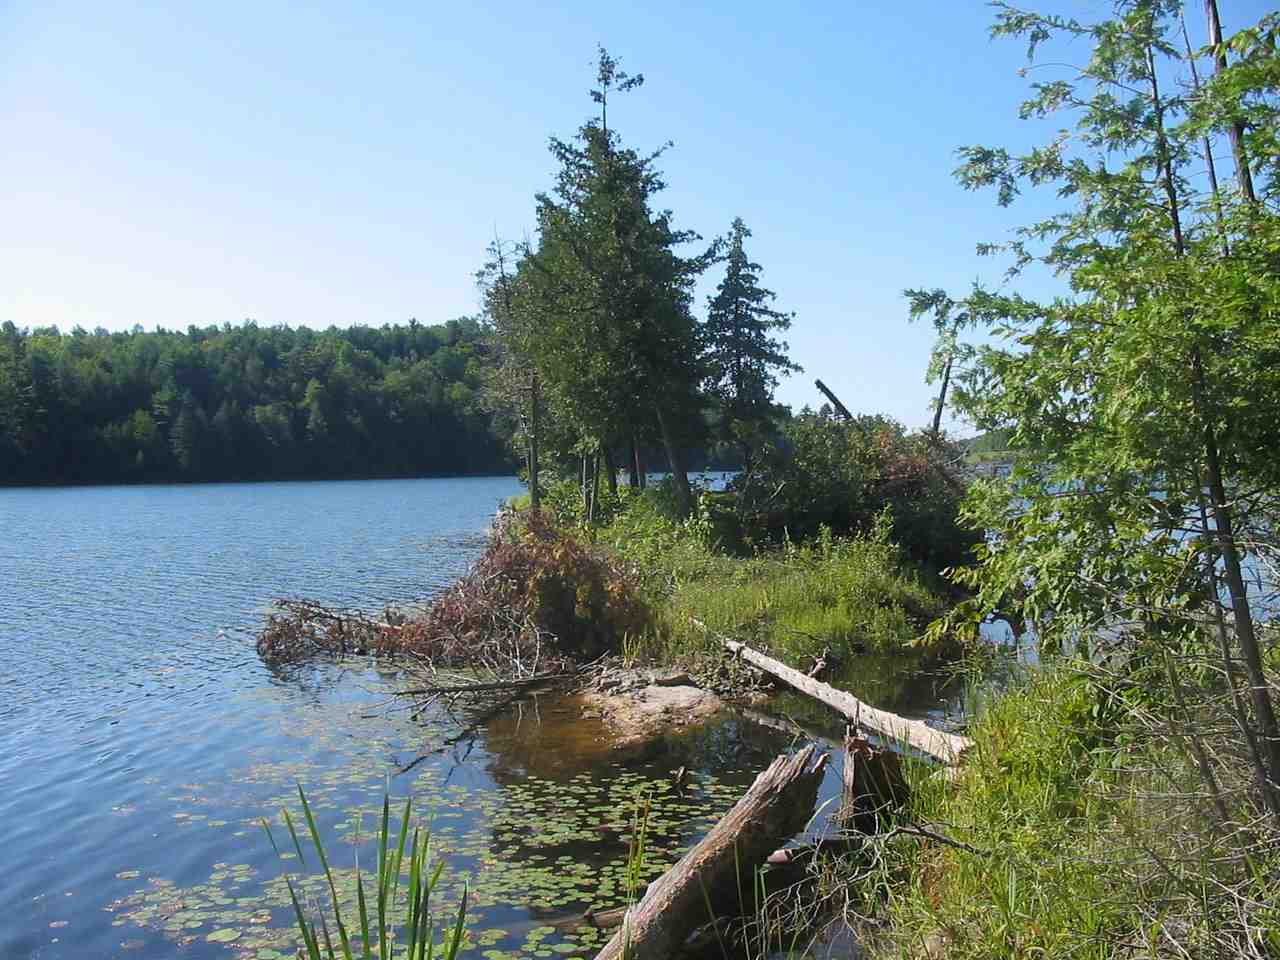 With 1,963 feet of Long Pond frontage and 1,897 feet of road frontage, there are so many possibilities for this land. Beautiful wooded acres with both young and older growth. Beach area and small seasonal island. Septic site plan and survey available. Tests support 6 four-bedroom homes and 2 three-bedroom homes with more area to still be tested. Established roadway makes it easy to hike and see the property and goes directly to the pond. $40k +/- in timber sited. Could use acreage in forestry program to offset taxes.